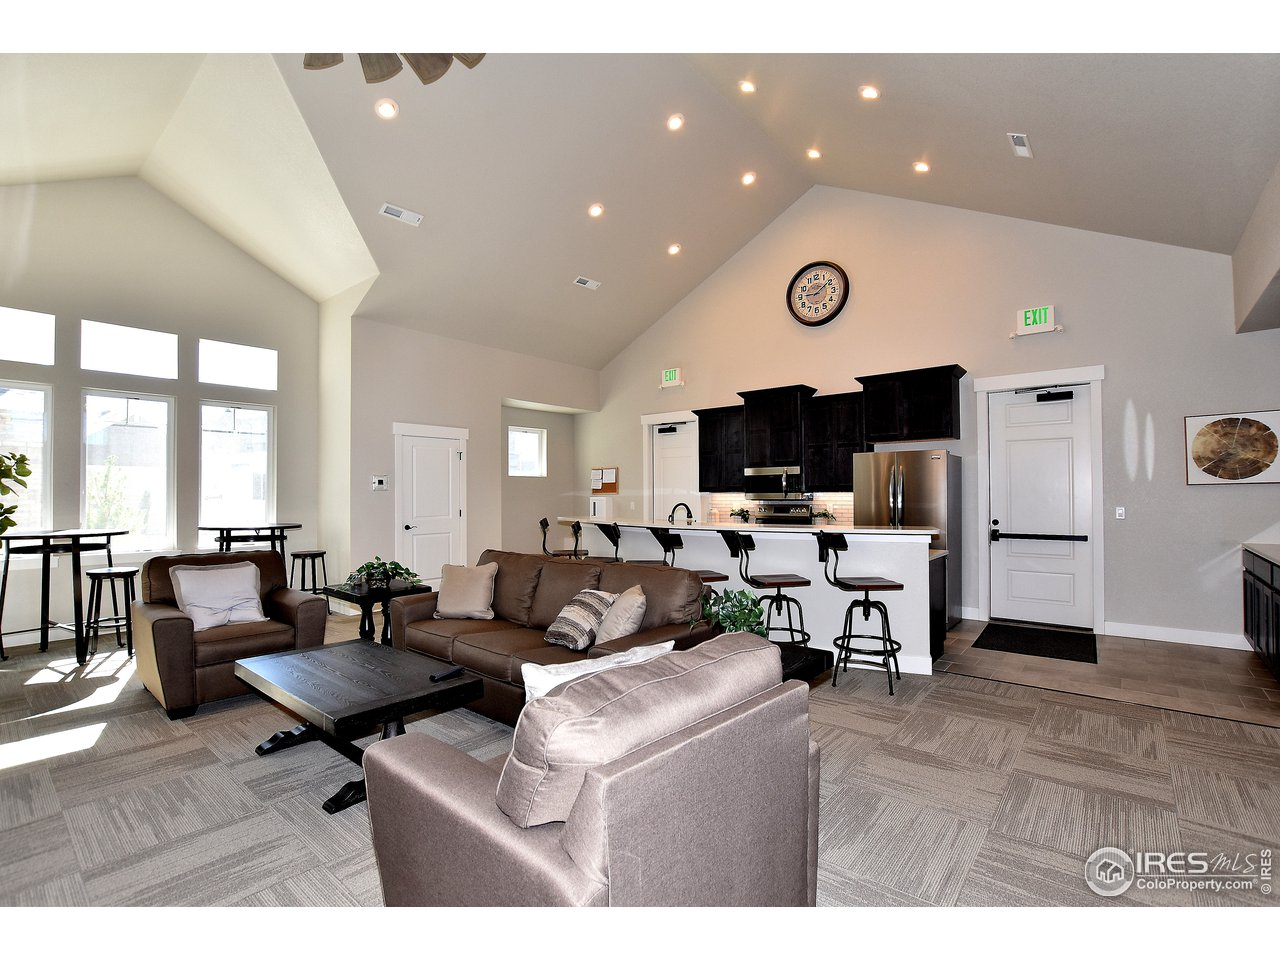 Host your large gatherings in the clubhouse